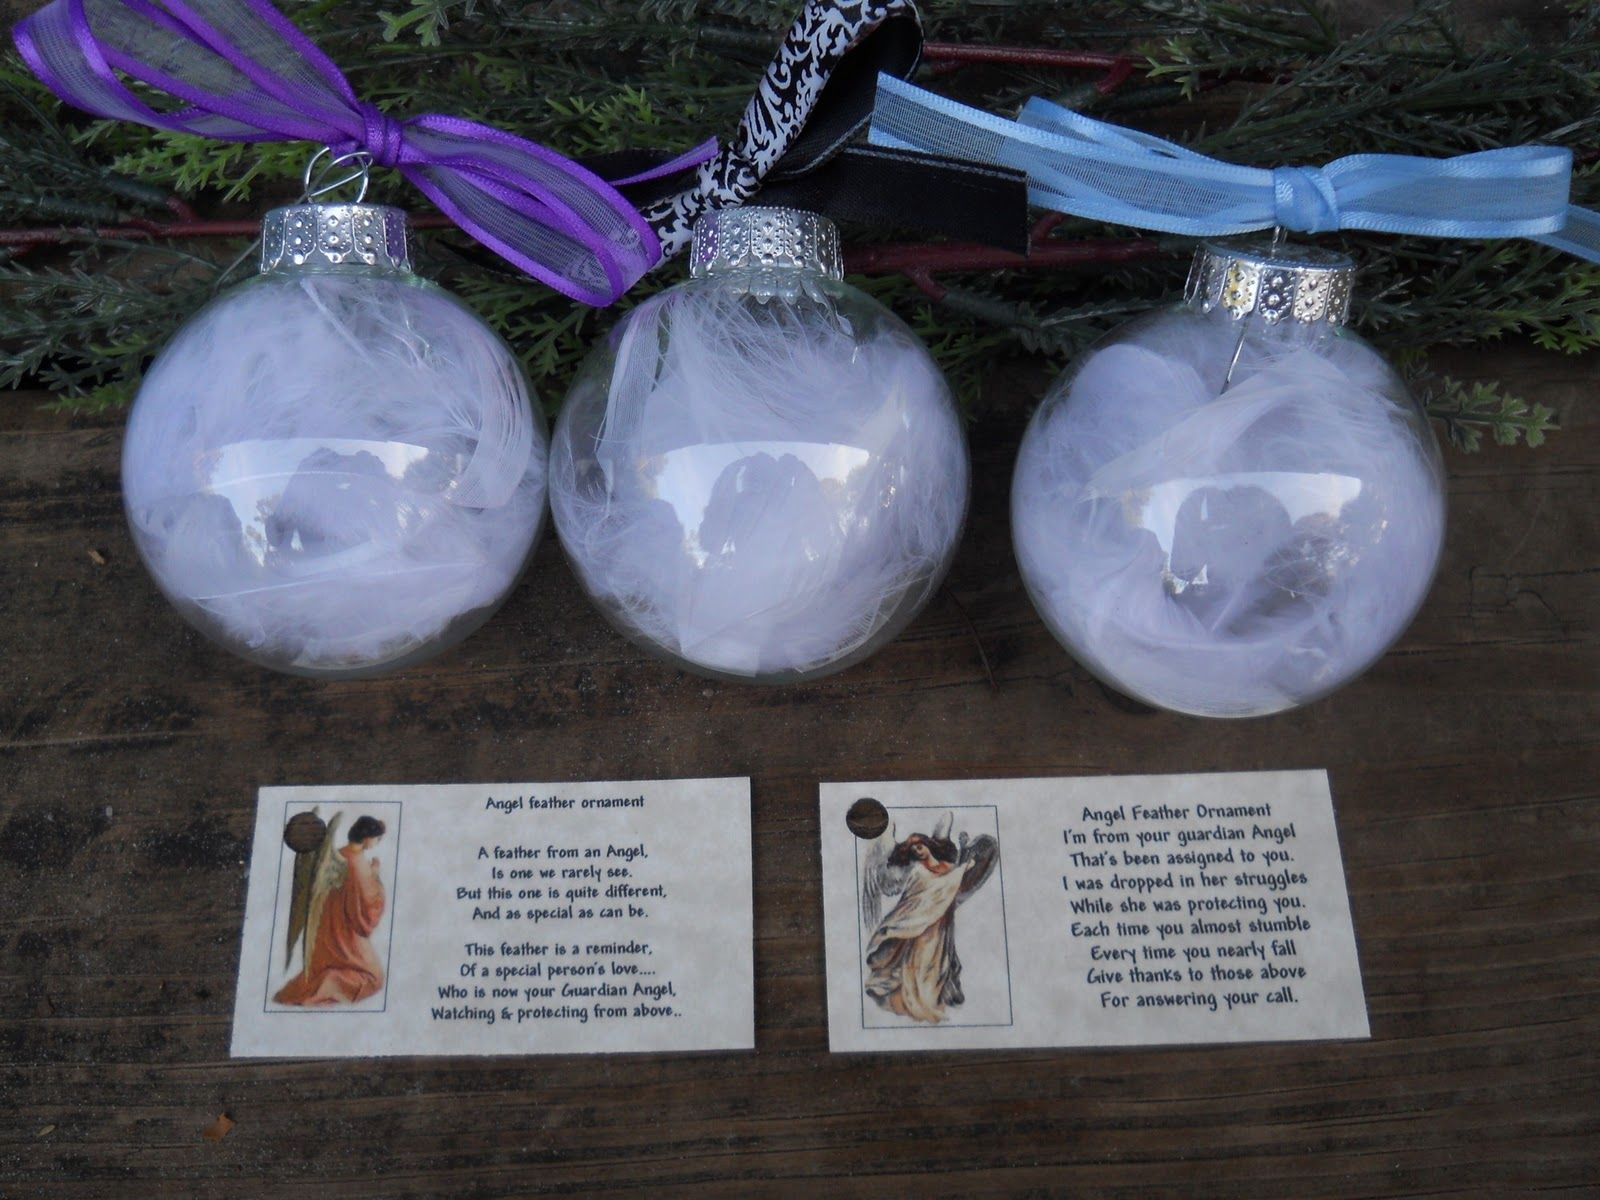 Ornaments for loved ones lost - Diy Angel Ornament A Feather From An Angel Is One We Rarely See But This One Is Quite Different And As Special As Can Be The Feather Is A Reminder Of A